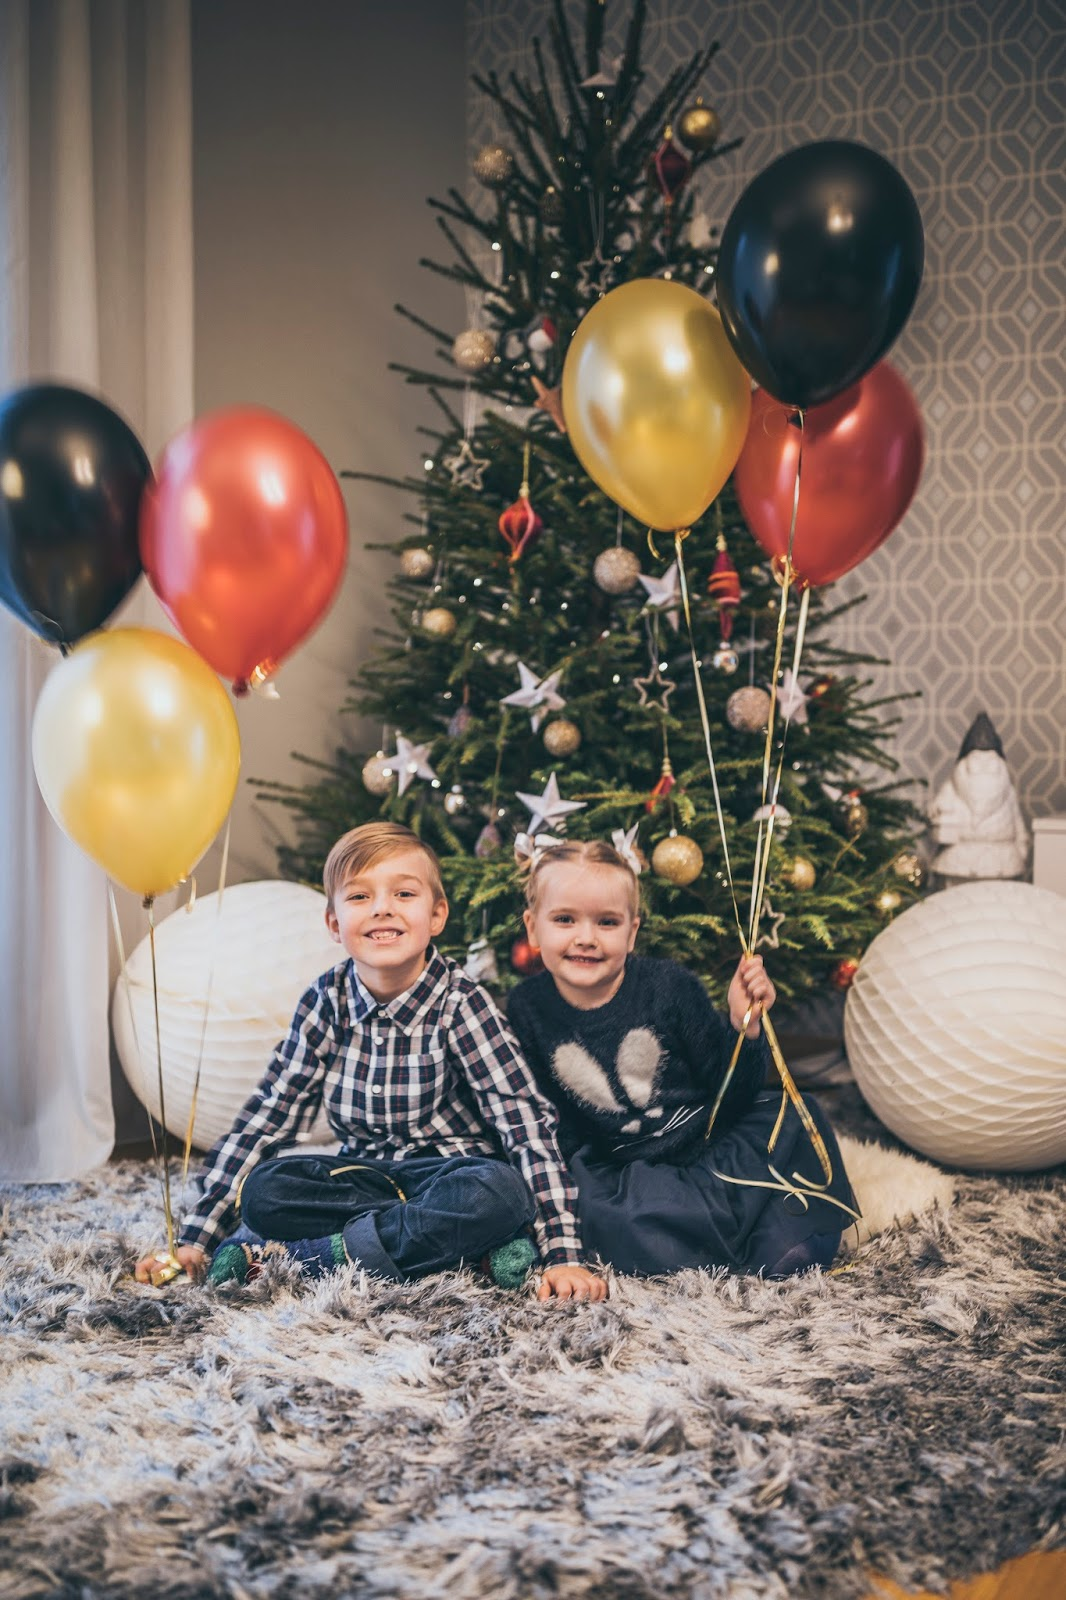 kids christmas photo tree balloons